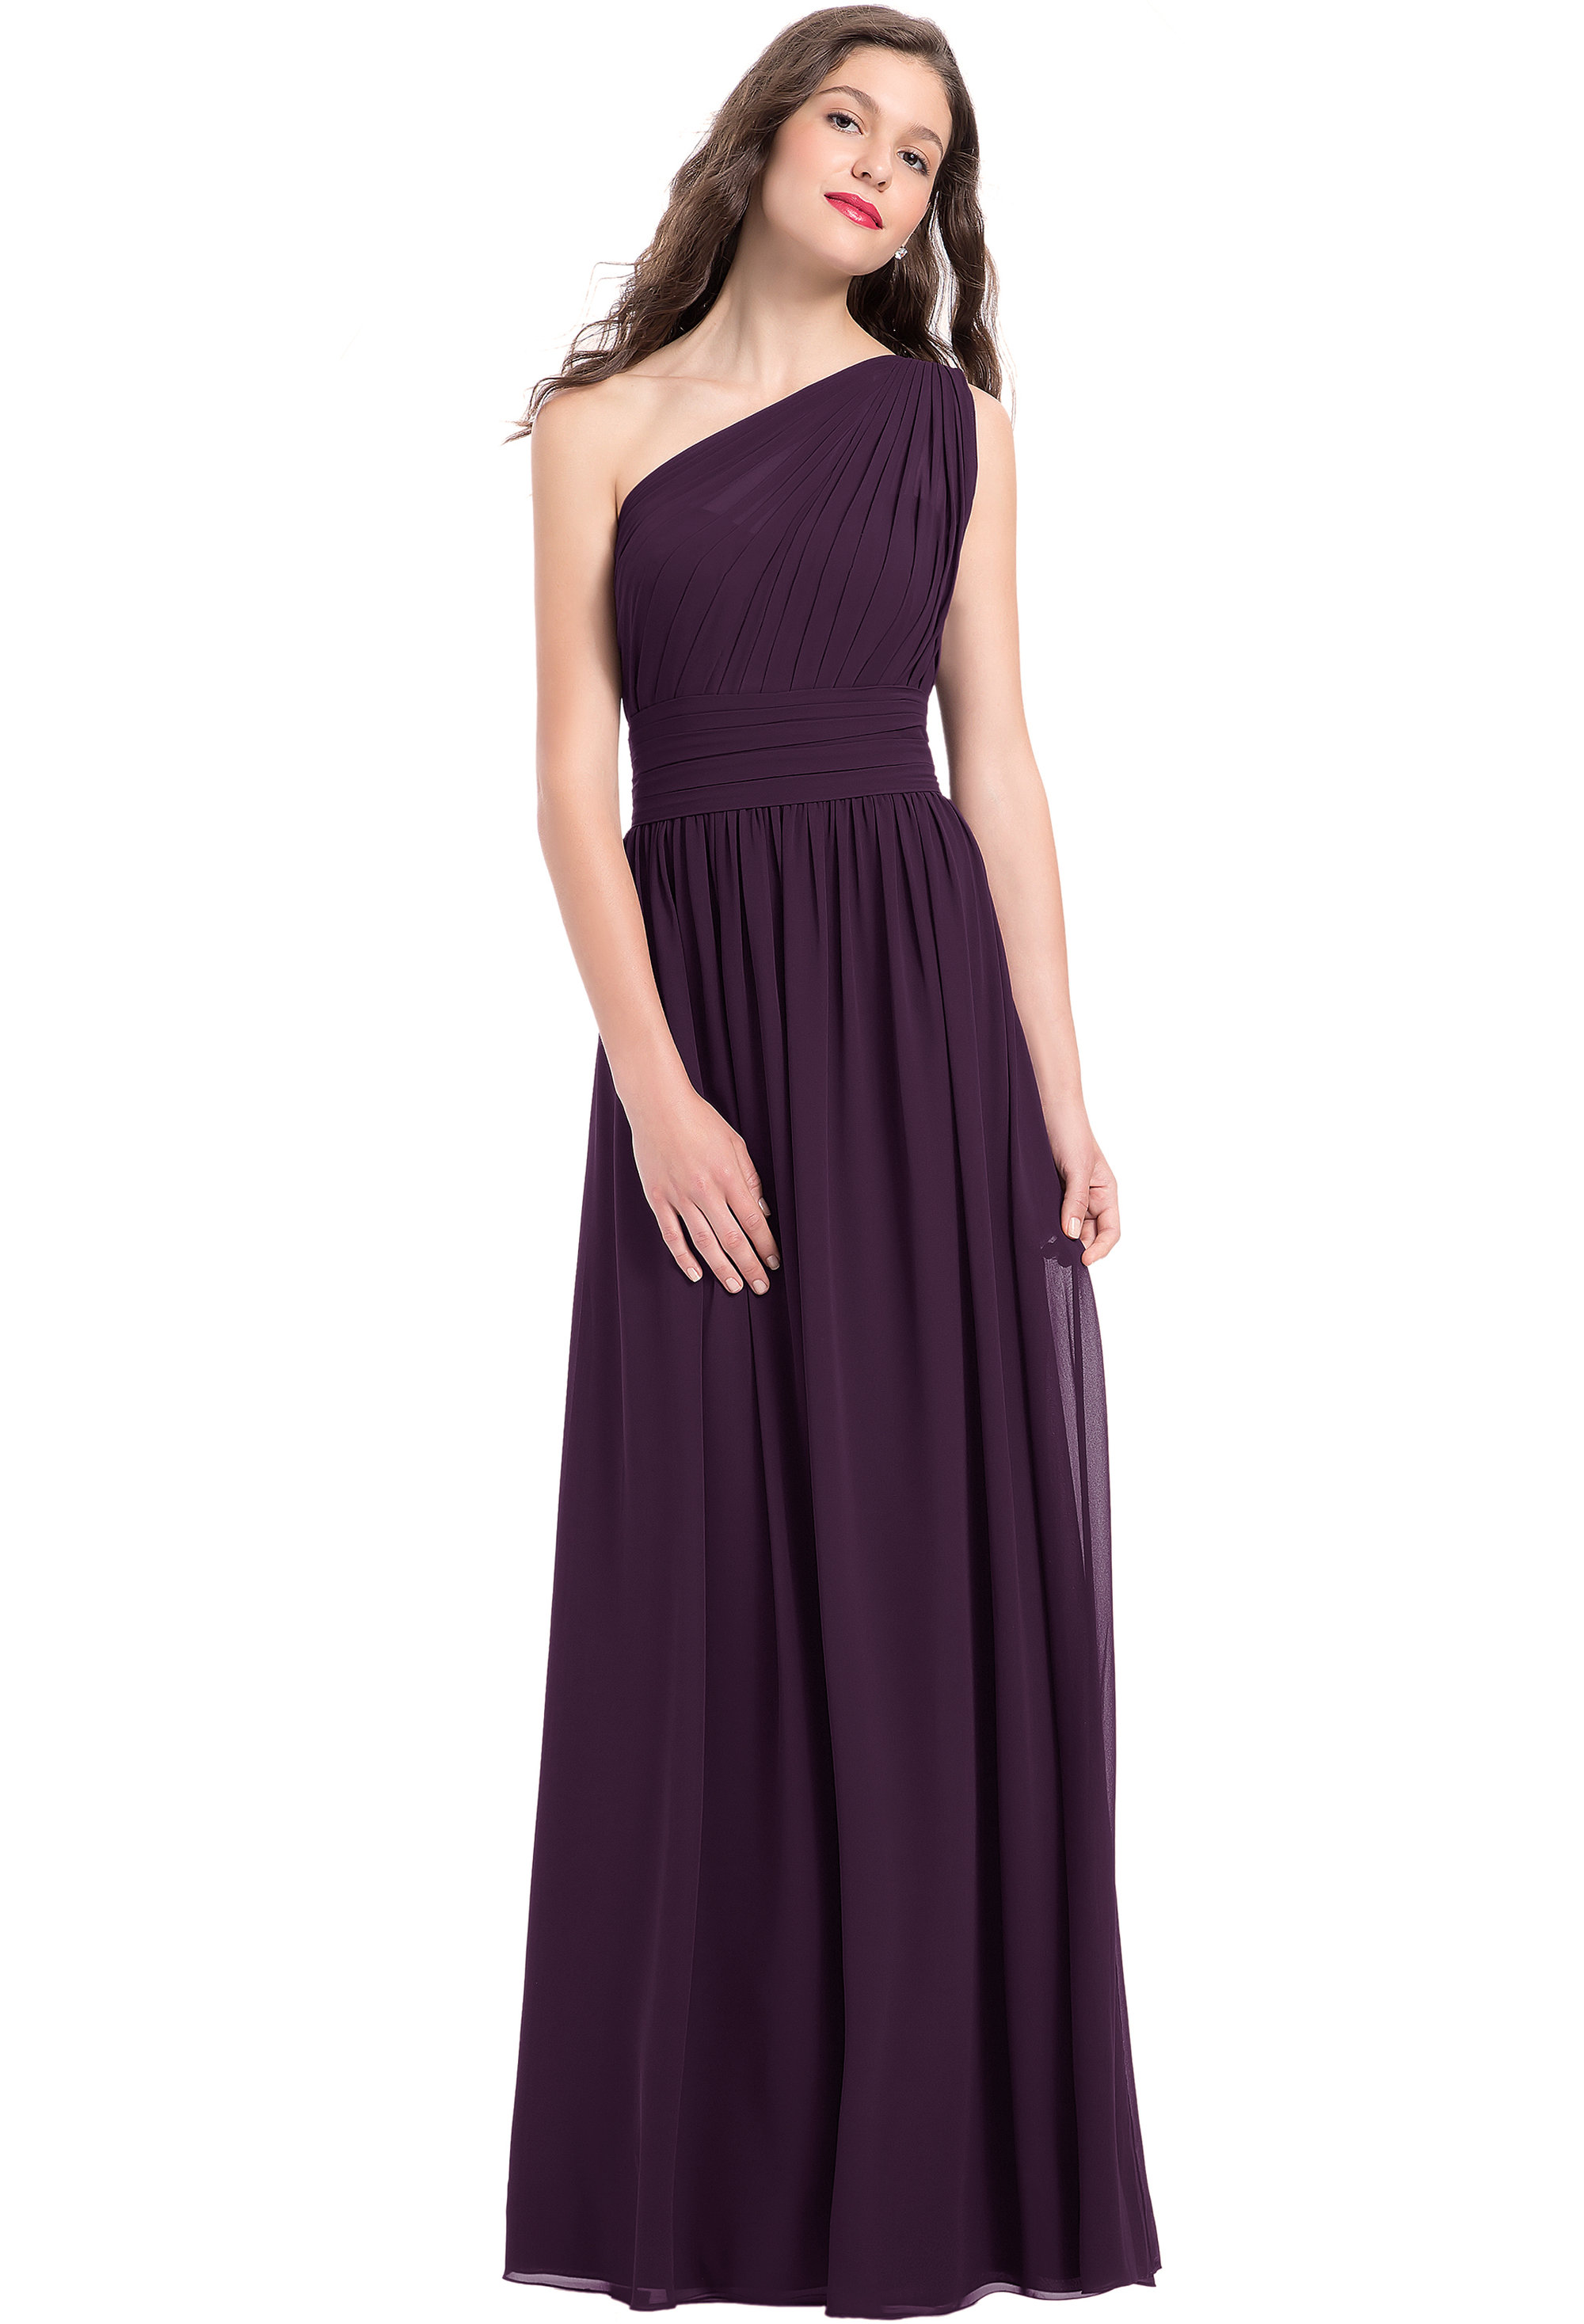 Bill Levkoff PLUM Chiffon One Shoulder A-line gown, $224.00 Front